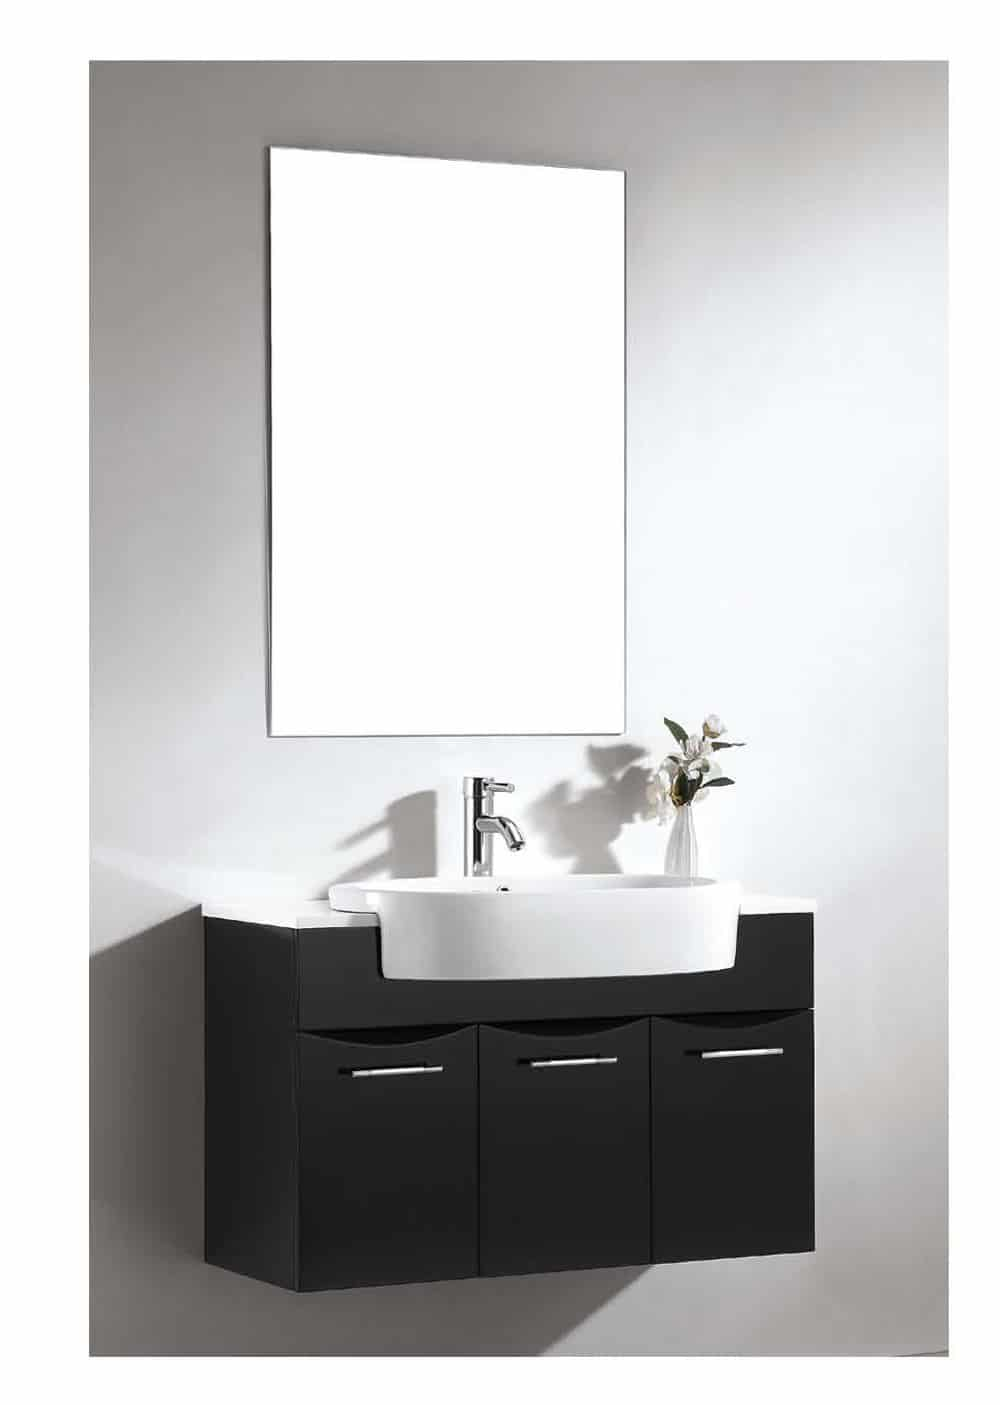 Dawn RET251405-06 Ceramic Lavatory 5-14 Thickness Sink Top with Overflow and Single Hole Faucet Deck